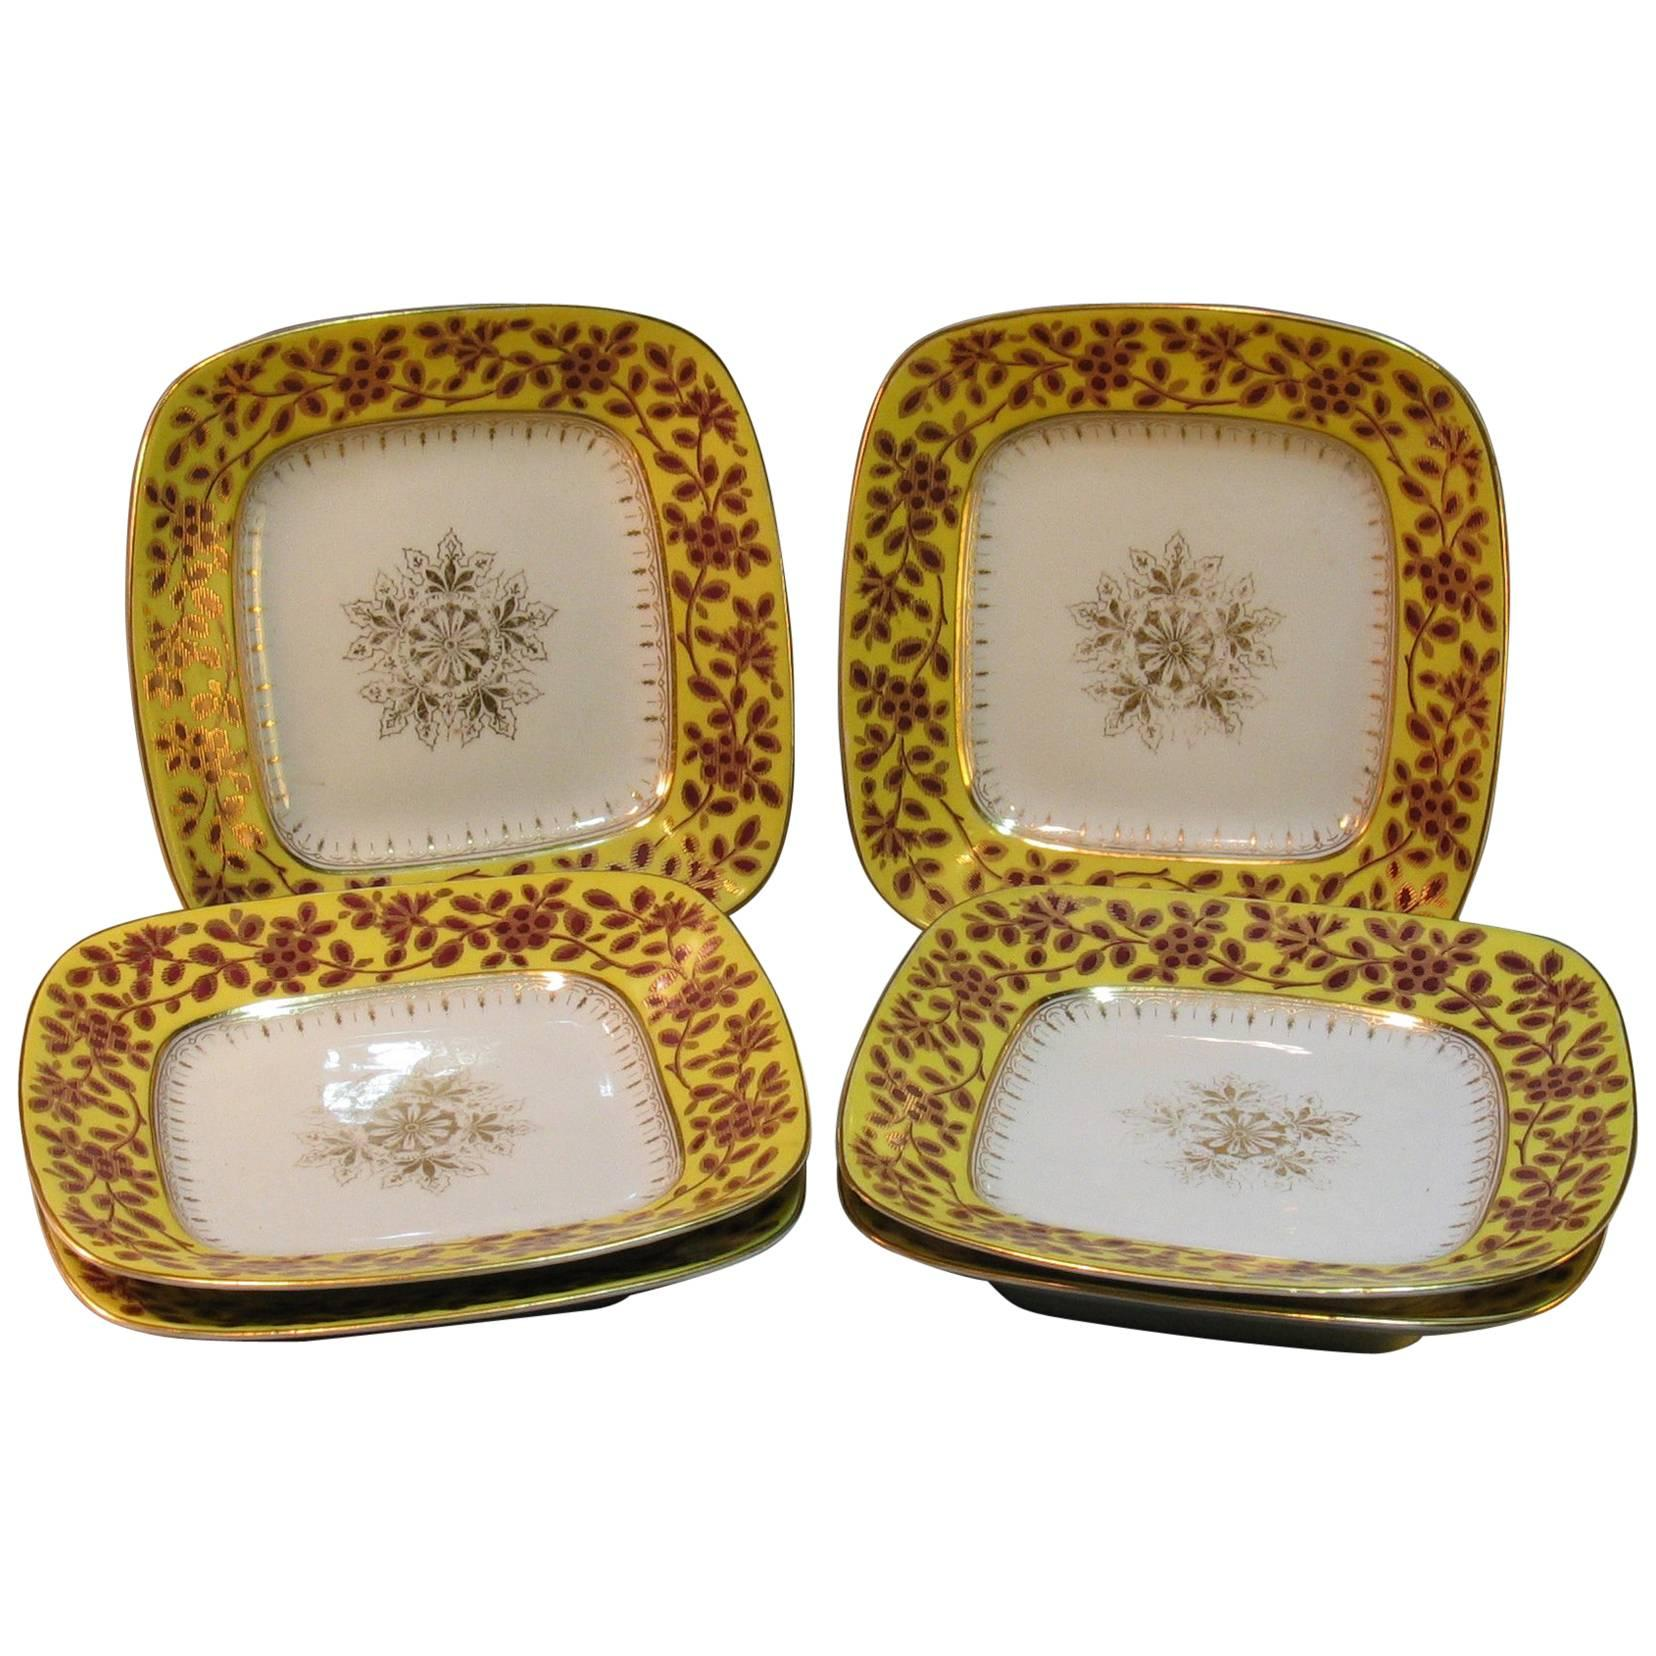 Six Unusual Rounded Square Porcelain Plates, 19th Century